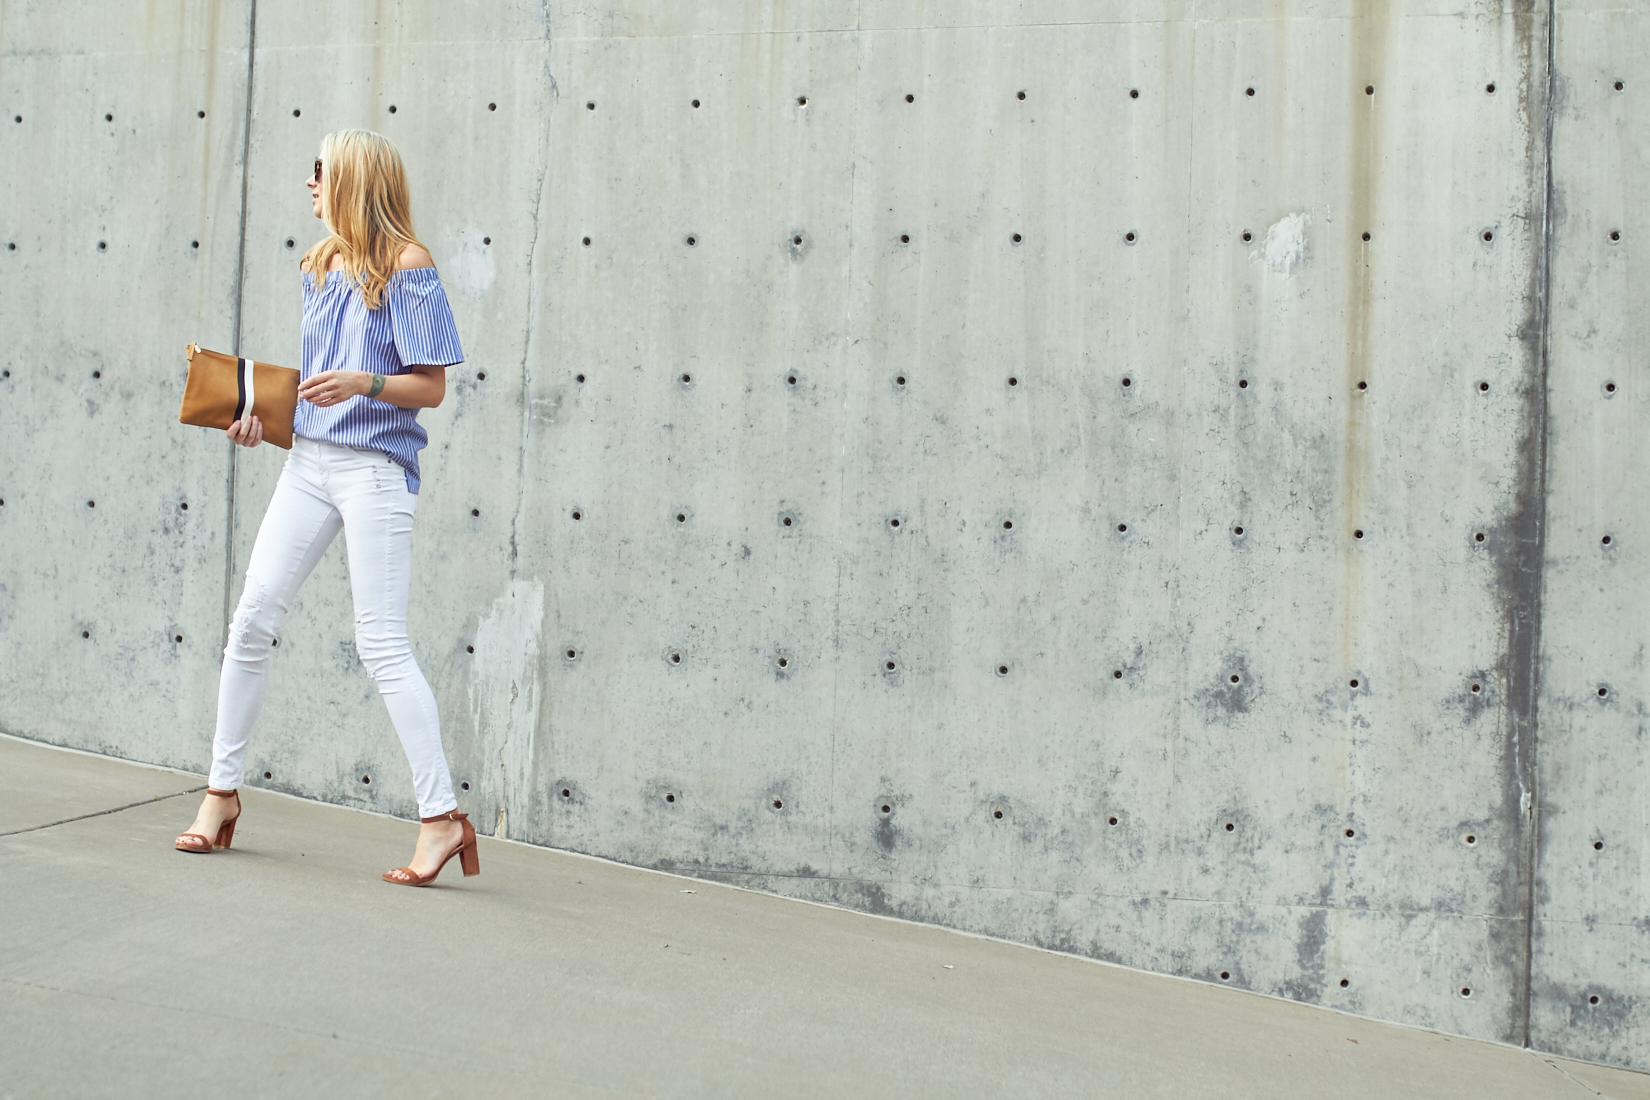 fashion-jackson-banana-republic-blue-stripe-off-the-shoulder-top-white-skinny-jeans-clare-v-clutch-stuart-weitzman-nearly-nude-sandals